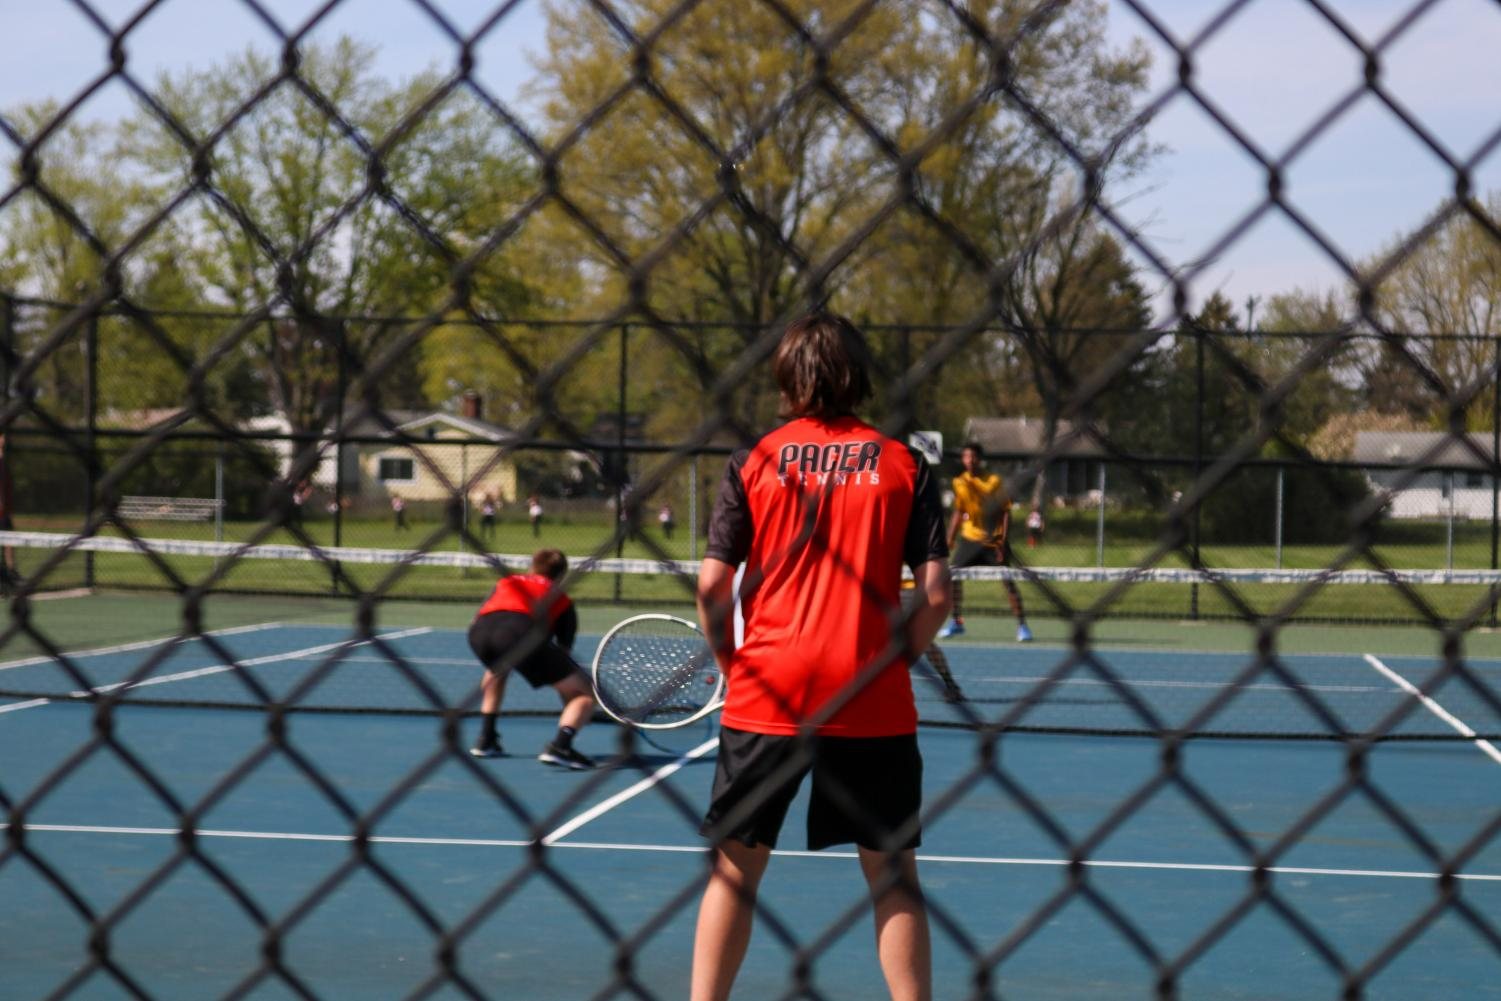 Grant LaMar and Ryne Higgins wait for their opponents to serve.